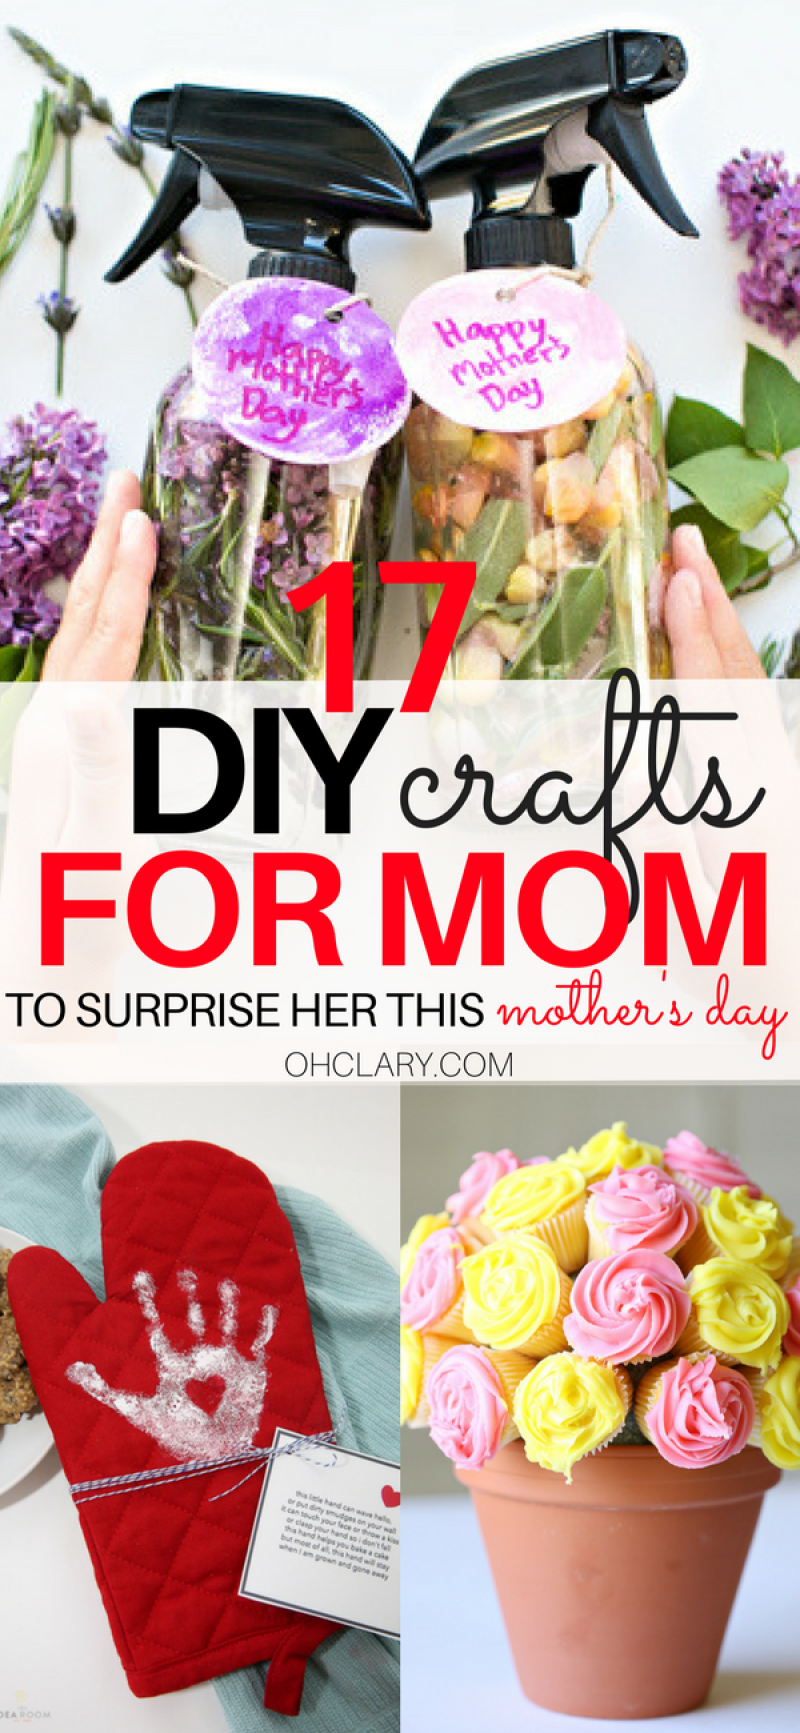 Looking for inexpensive and easy handmade gift ideas to make for your mom? Check out my post on 17 Handmade Mother's Day Gifts your mom will love! These DIY Mother's Day crafts are sure to bring a smile to your moms face. handmade mothers day gifts | diy mothers day crafts | handmade mothers day gifts from kids | handmade mothers day cards | diy mothers day gifts for grandma | diy mothers day gifts from kids easy | diy mothers day presents #mothersdaygift #diygifts